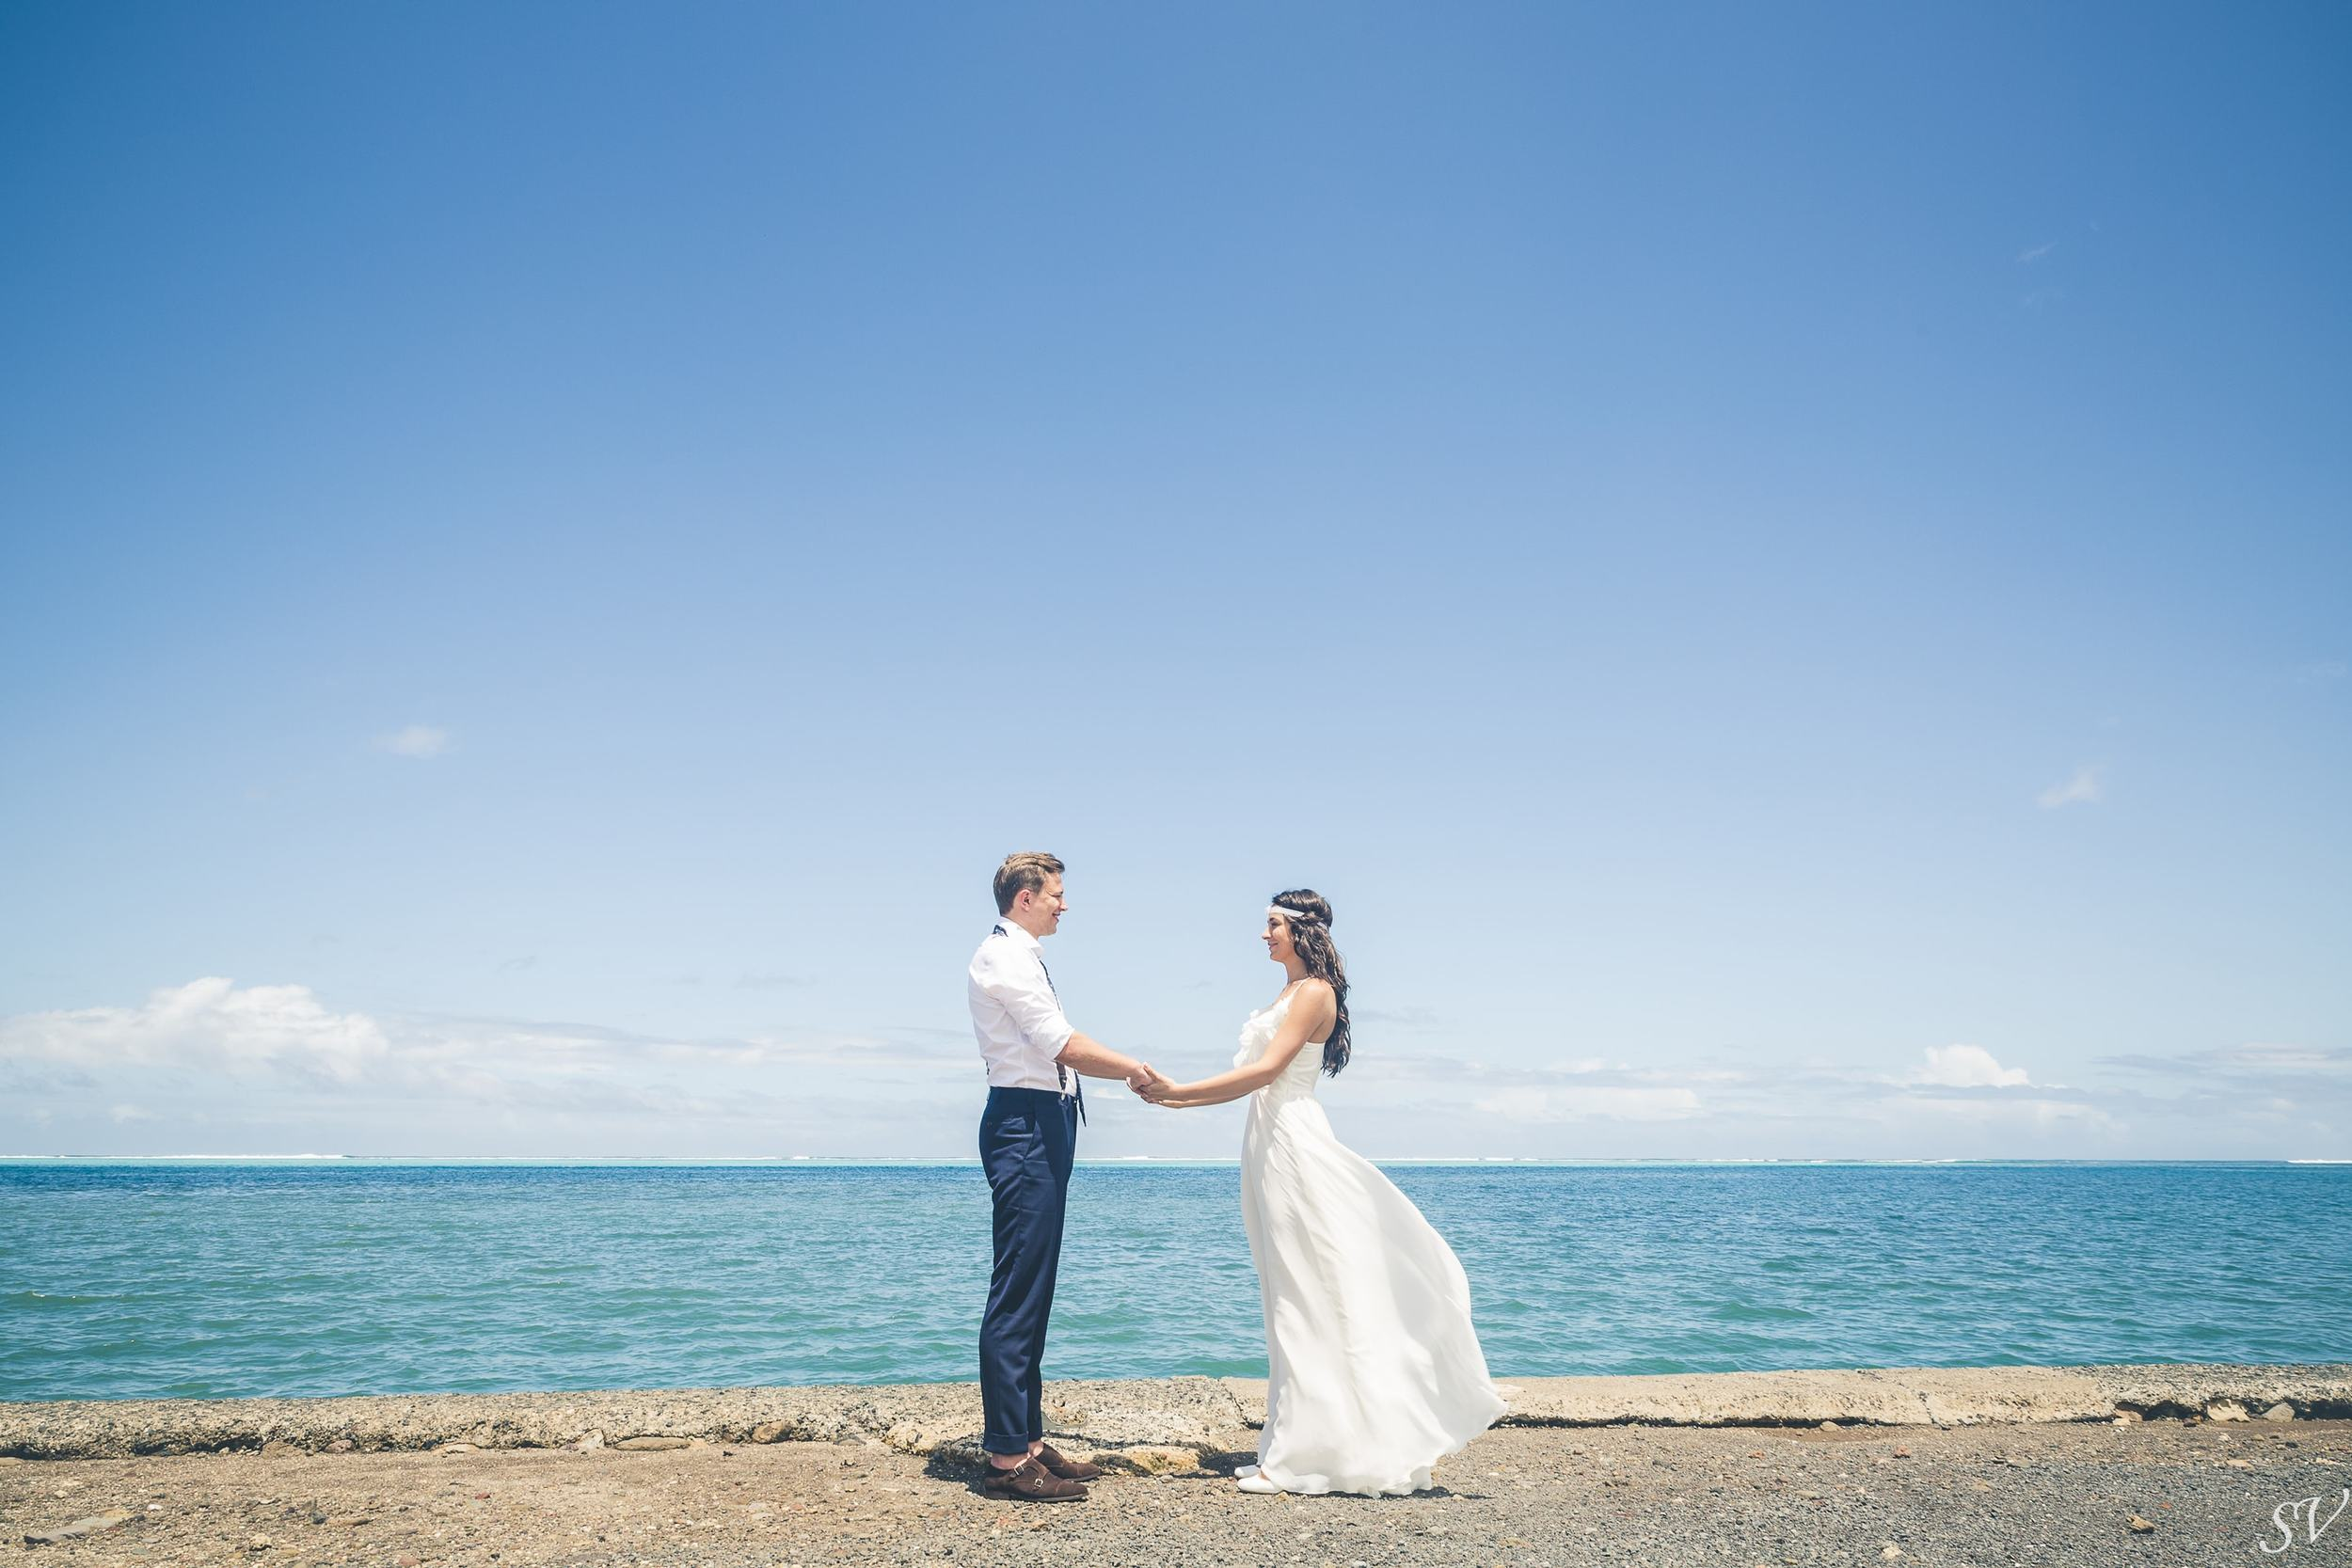 Bride and groom with the ocean for background